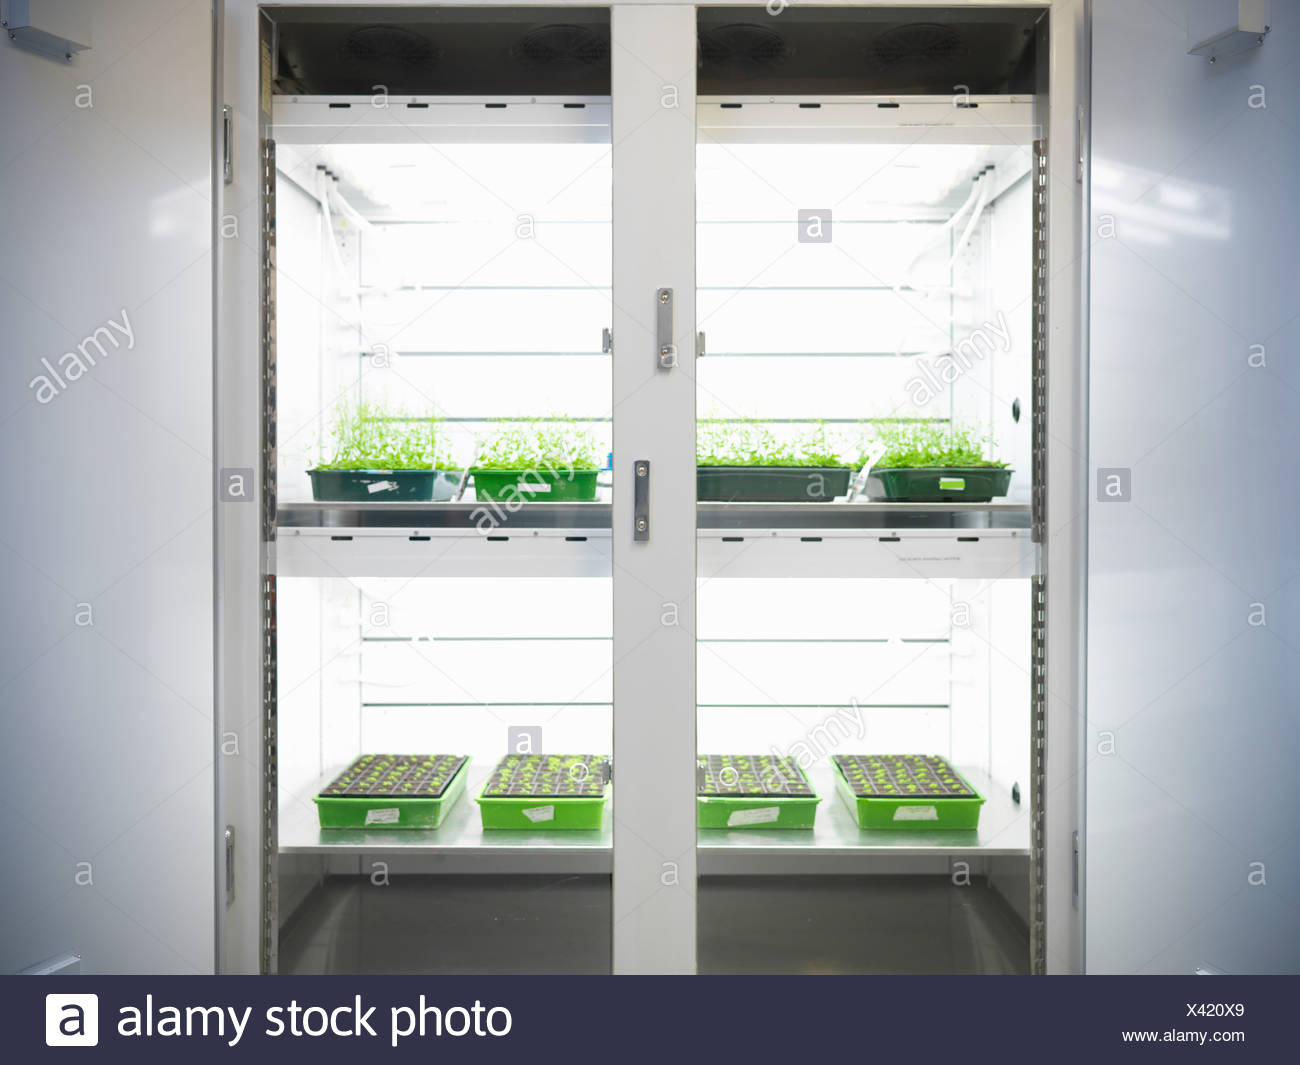 Plants in lab container - Stock Image